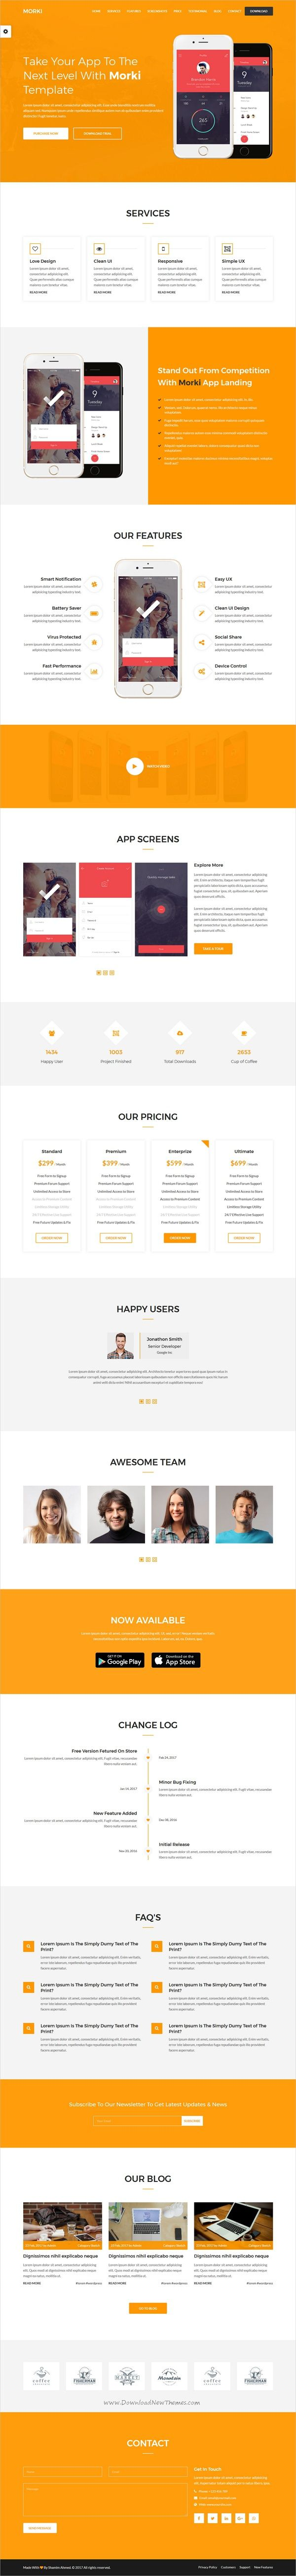 Cute 1.25 Button Template Small 12 Piece Puzzle Template Round 1st Time Job Resume 2.25 Button Template Youthful 2007 Word Templates Soft2015 Calendar Template Microsoft 25  Best Ideas About Mobile Website Template On Pinterest | Ui ..